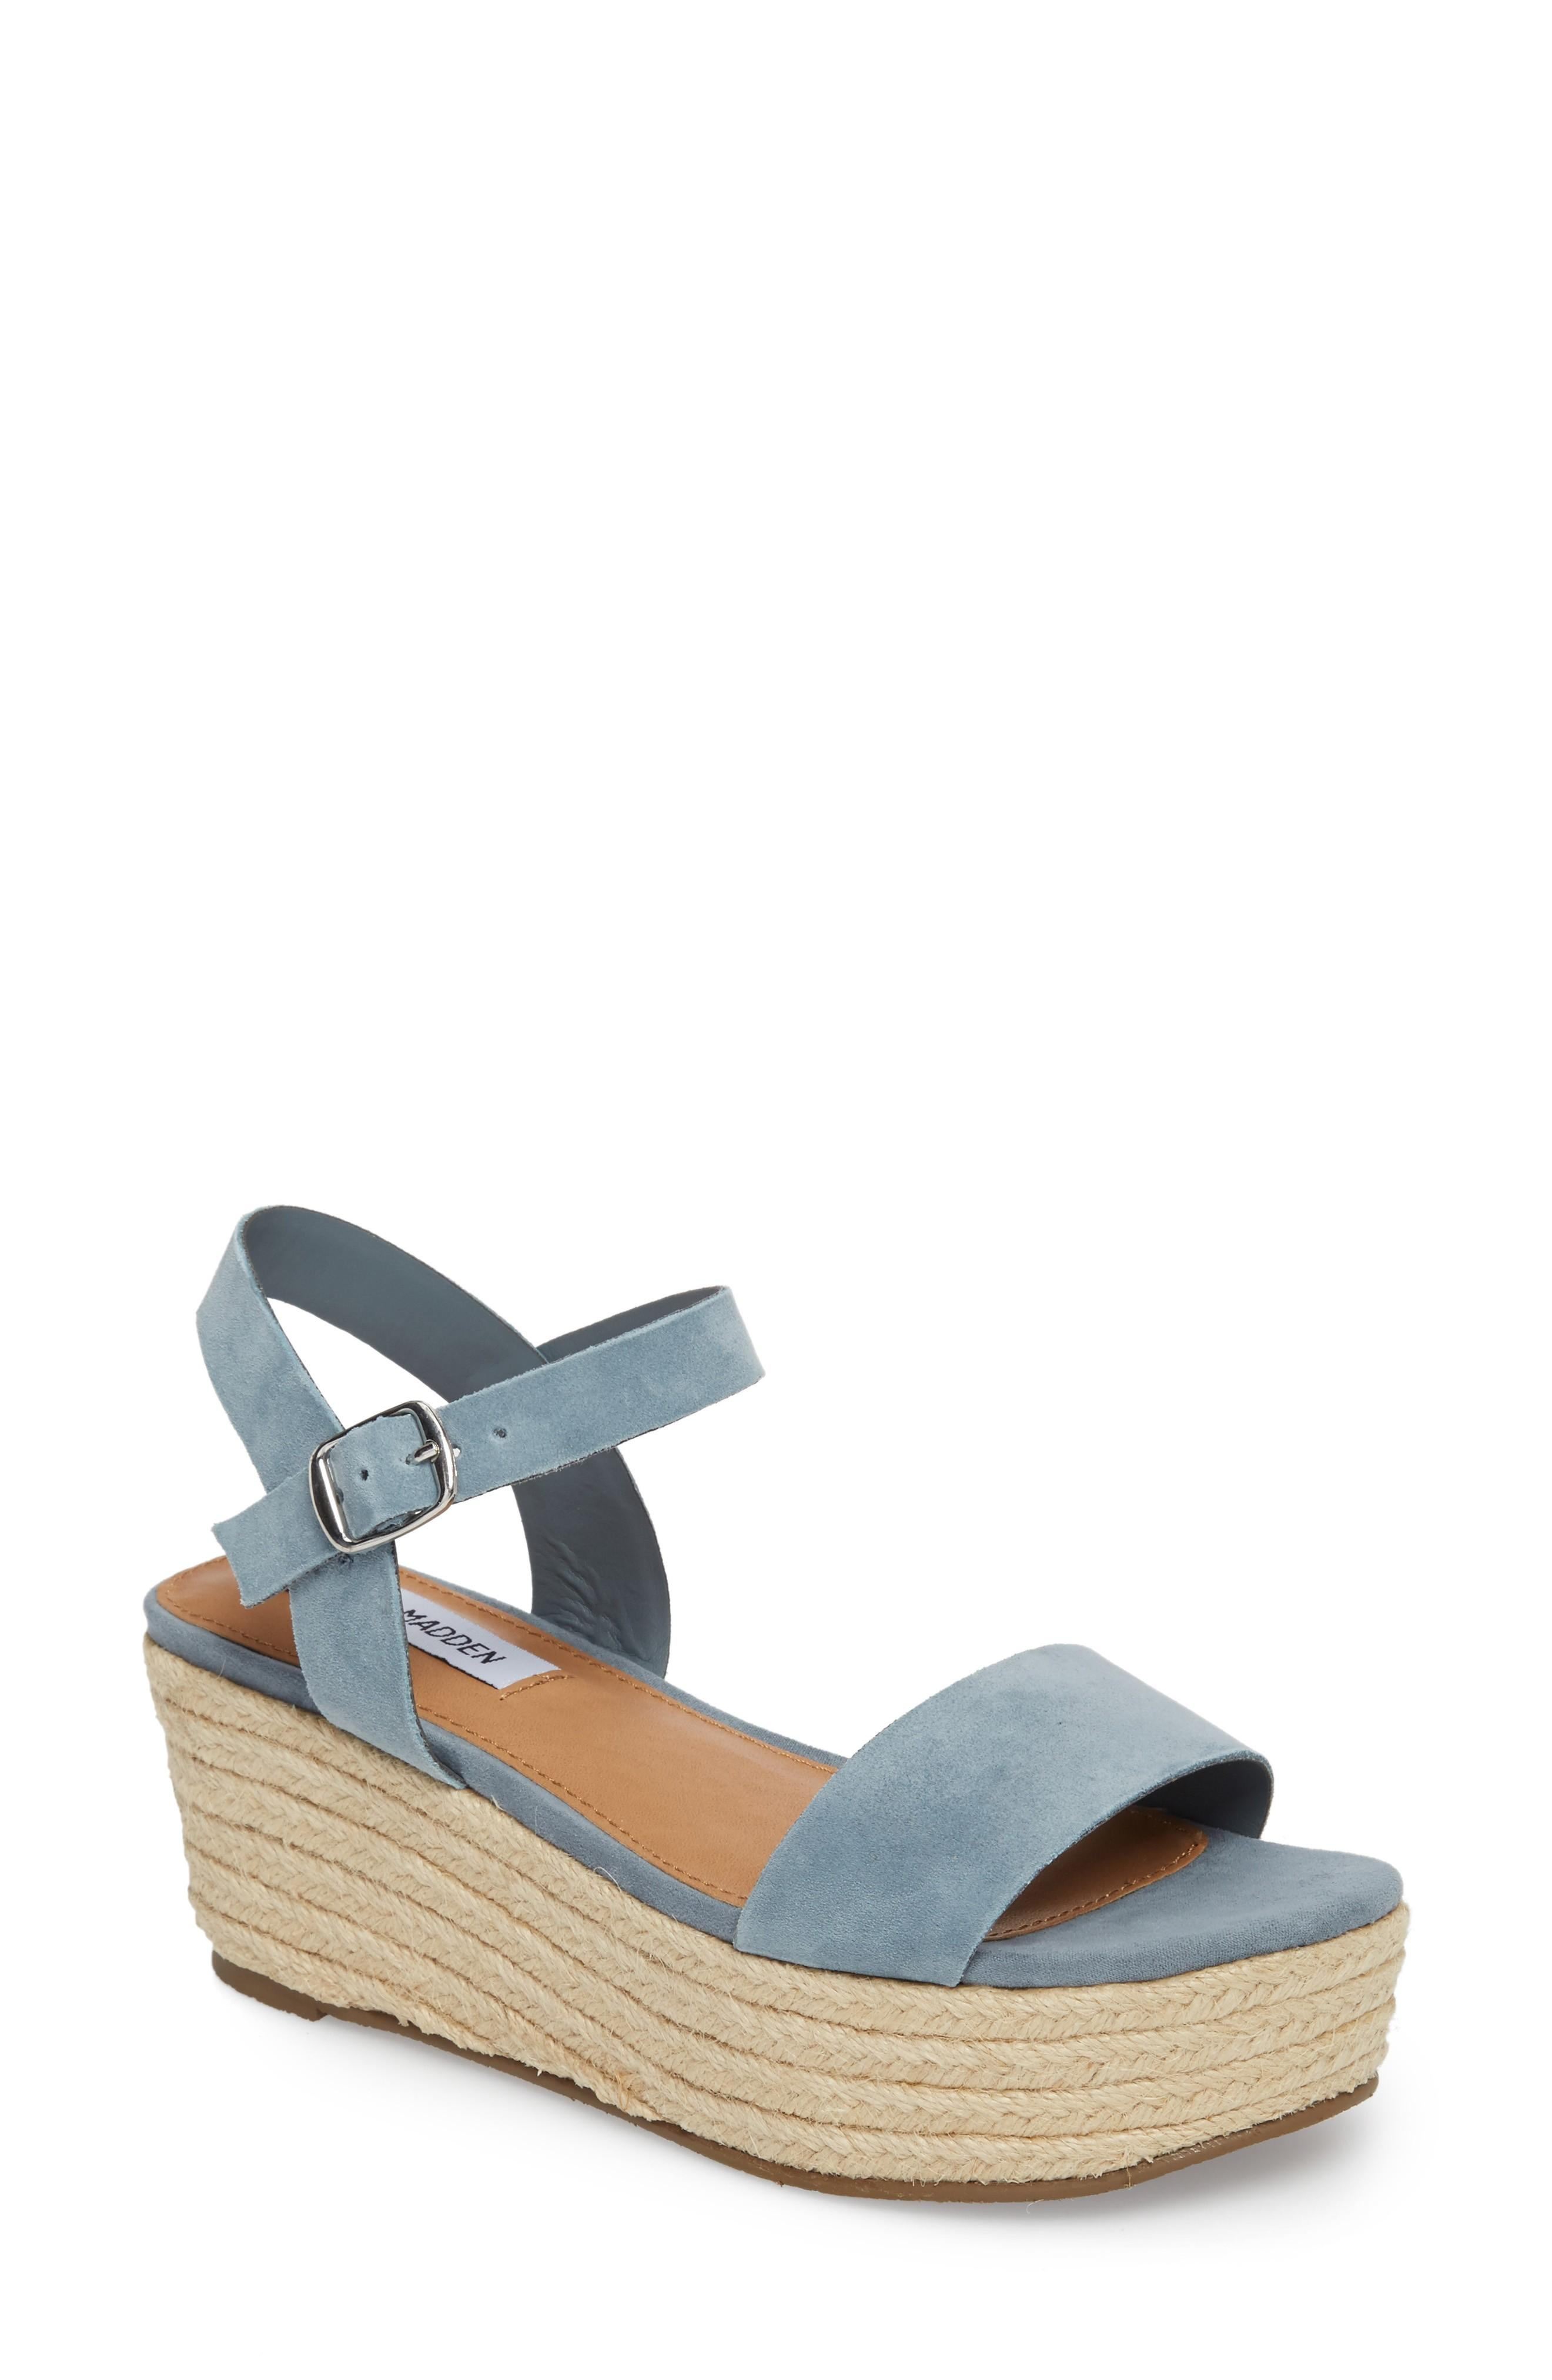 194157acce7 Busy Platform Espadrille Sandal in Blue Suede